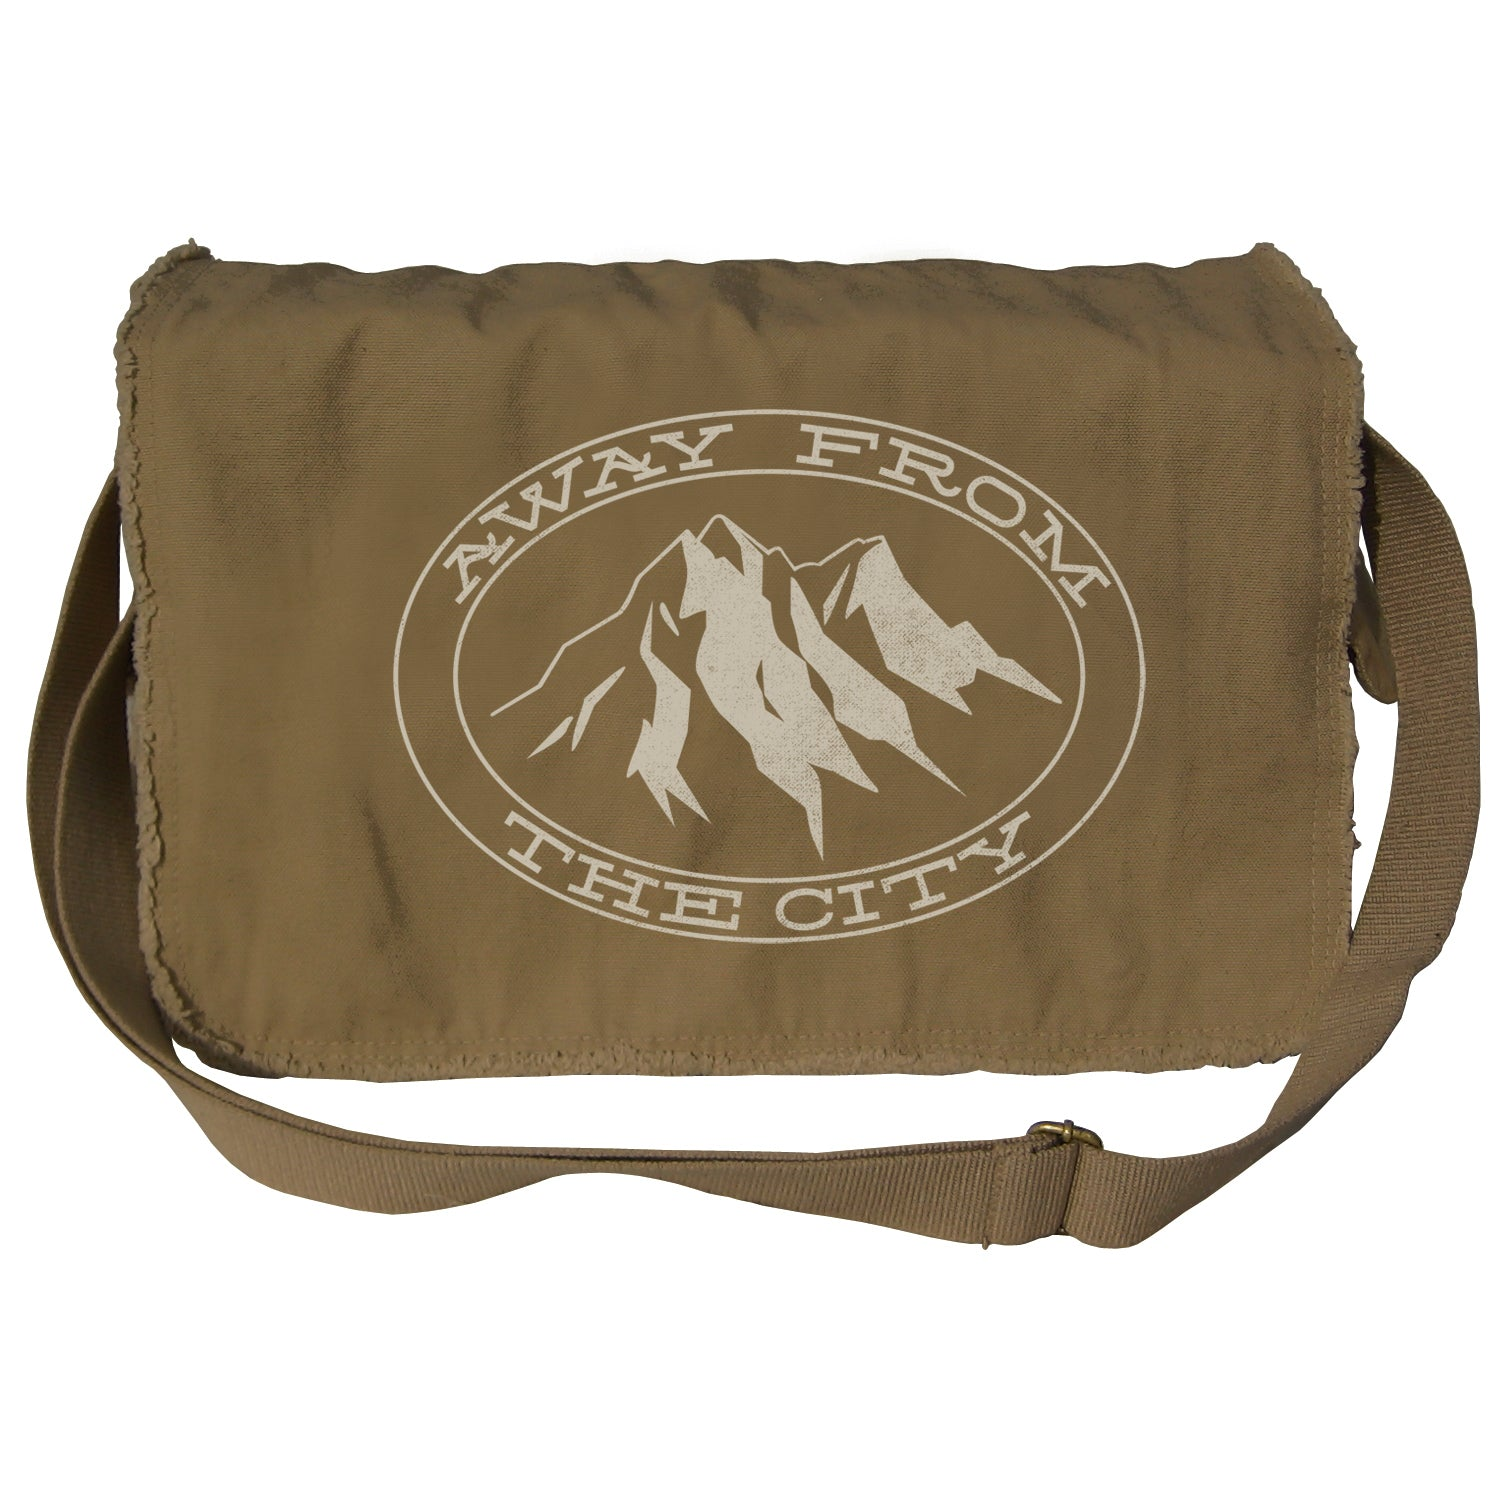 Away From The City Messenger Bag